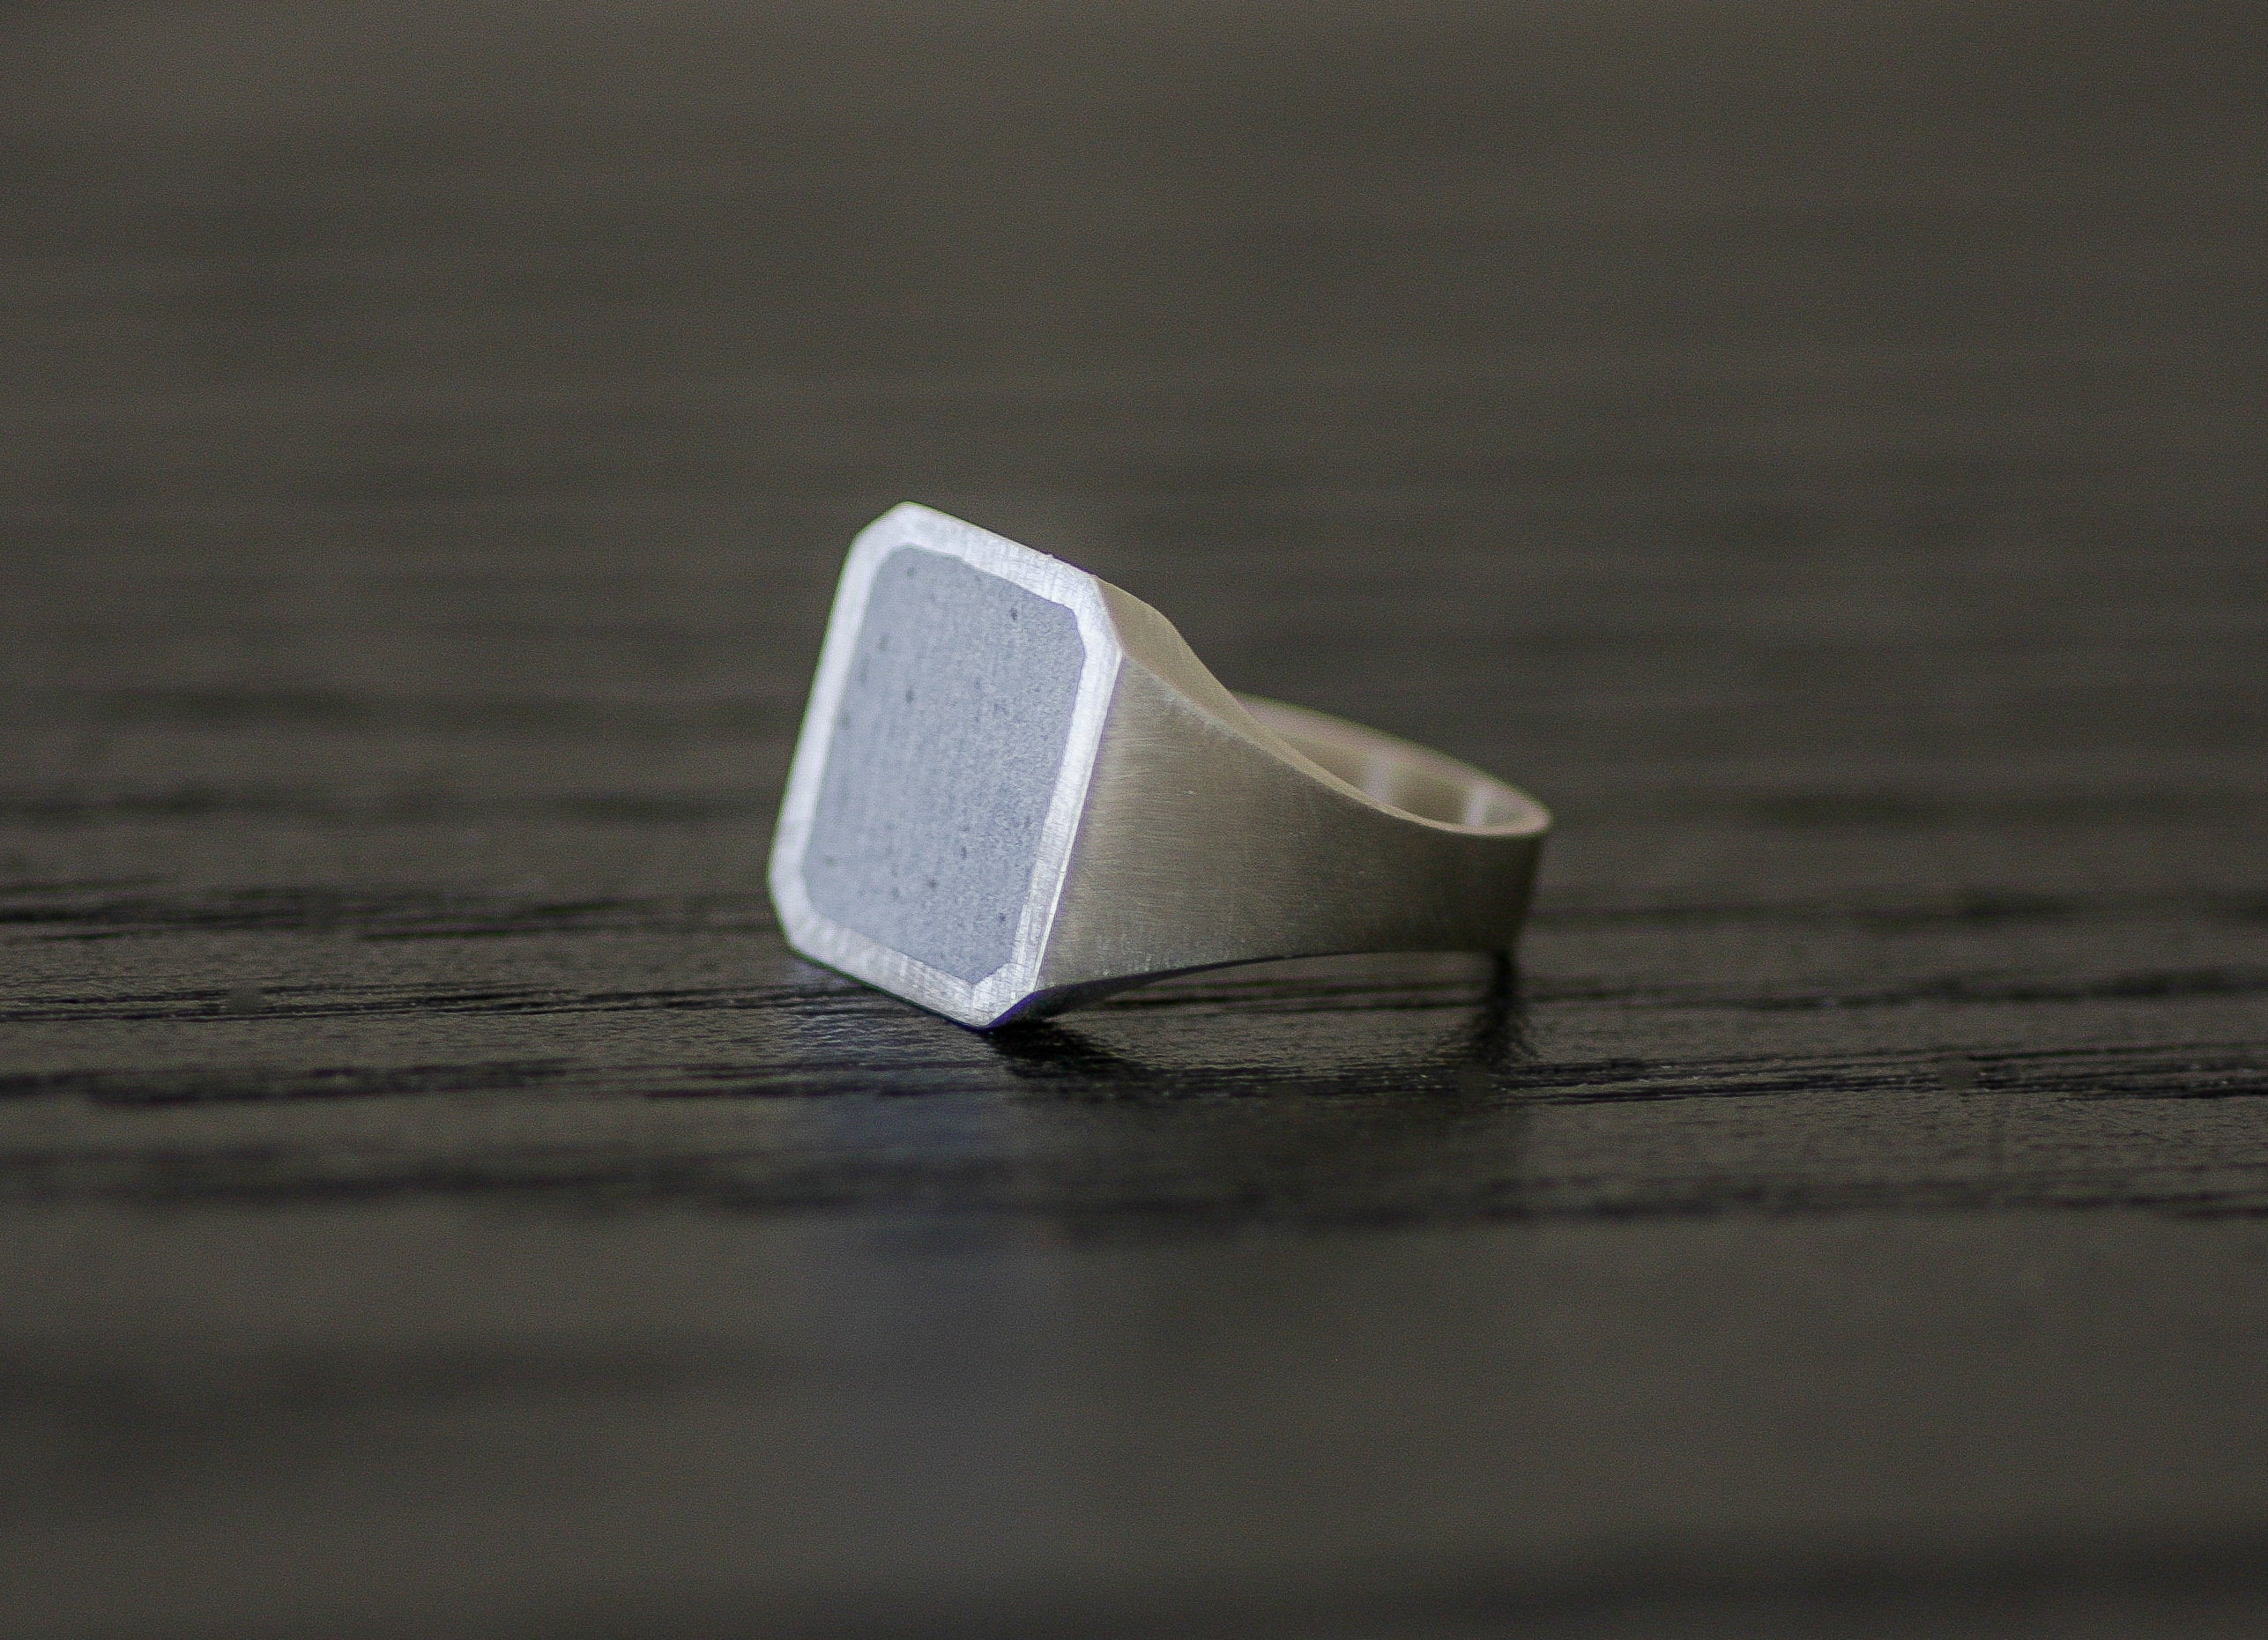 Gold and Concrete Signet Ring, Letter ring, Initial Square Ring, Cement Jewelry, Man Concrete Ring, Hadas Shaham - hs